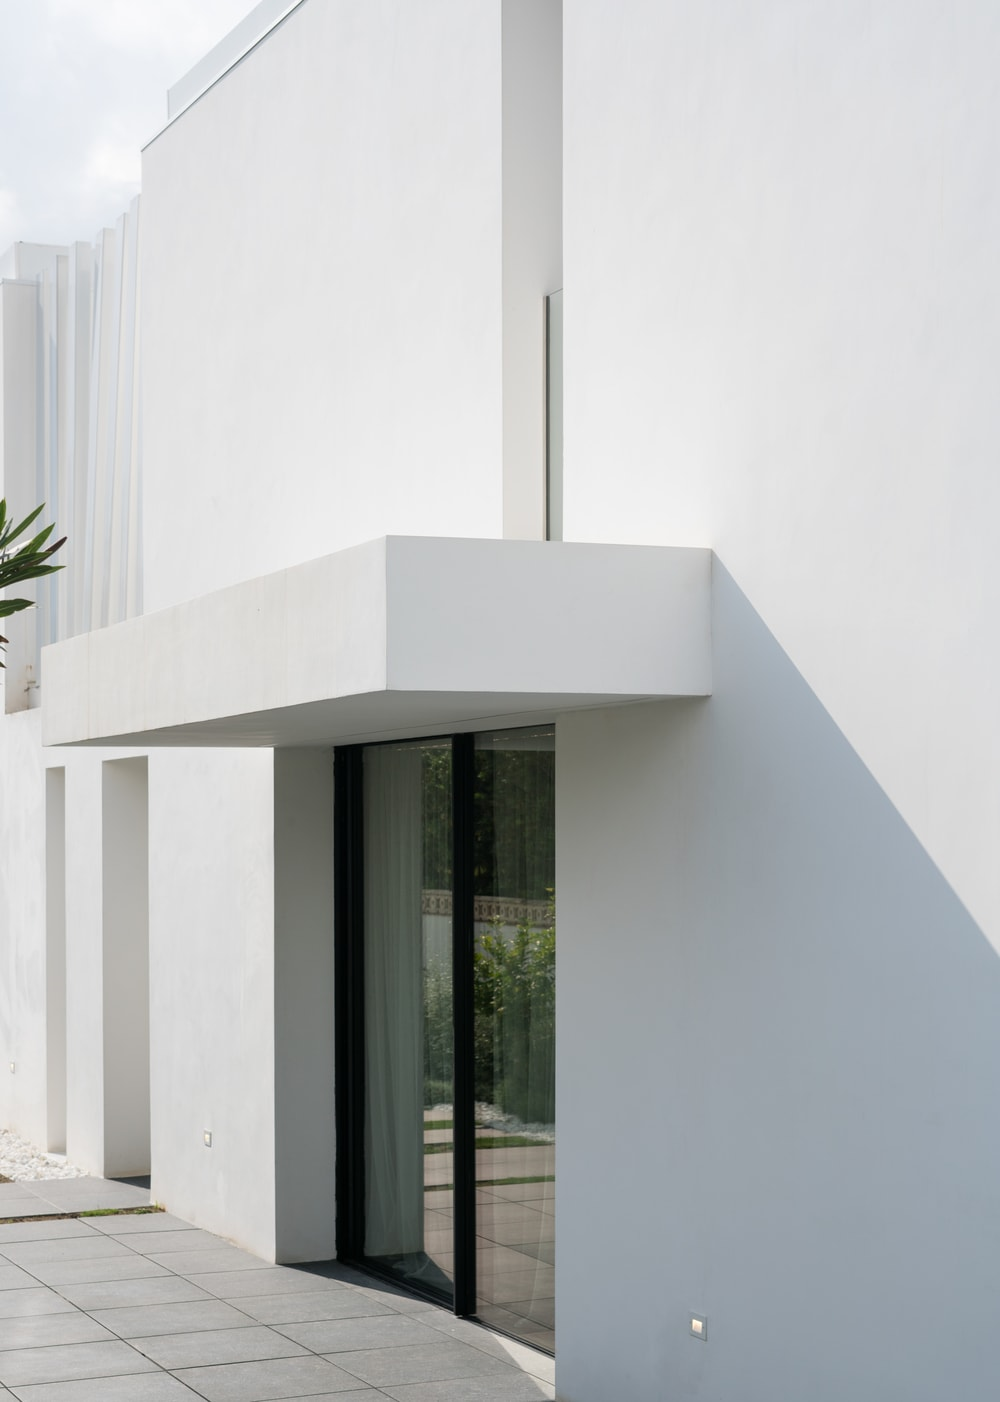 This is a look at the side entrance of the house with large glass sliding door to complement the white walls and white cover of the entrance.